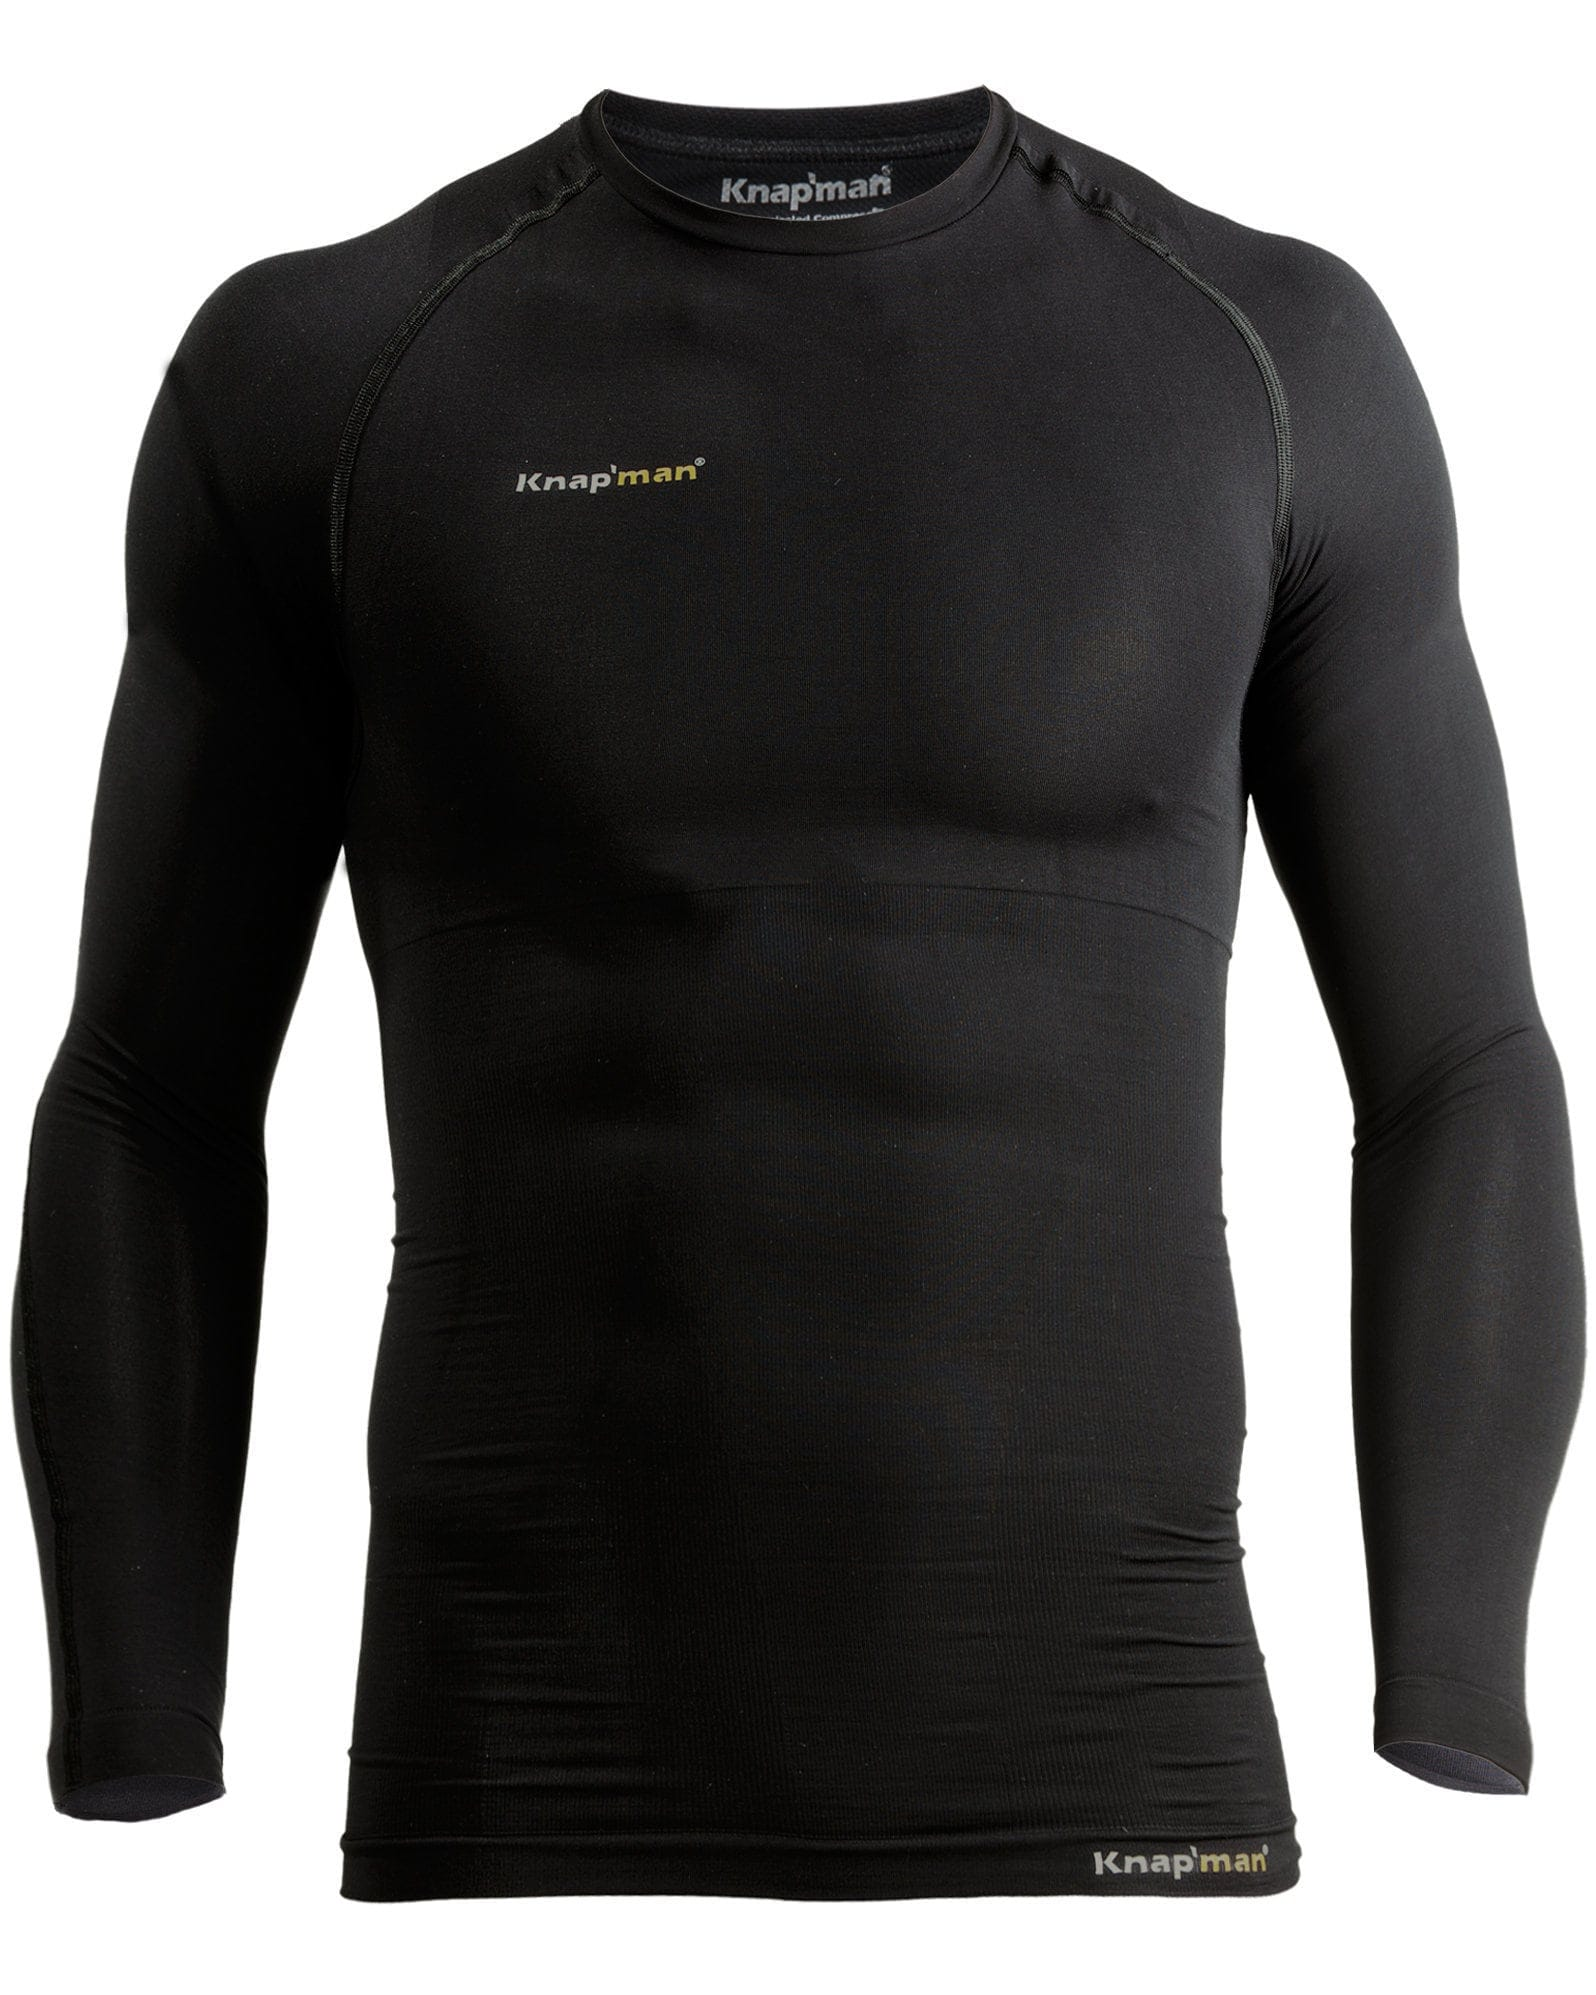 Knap'man Long Sleeve Compression Shirt UltraThin Crew Neck Black